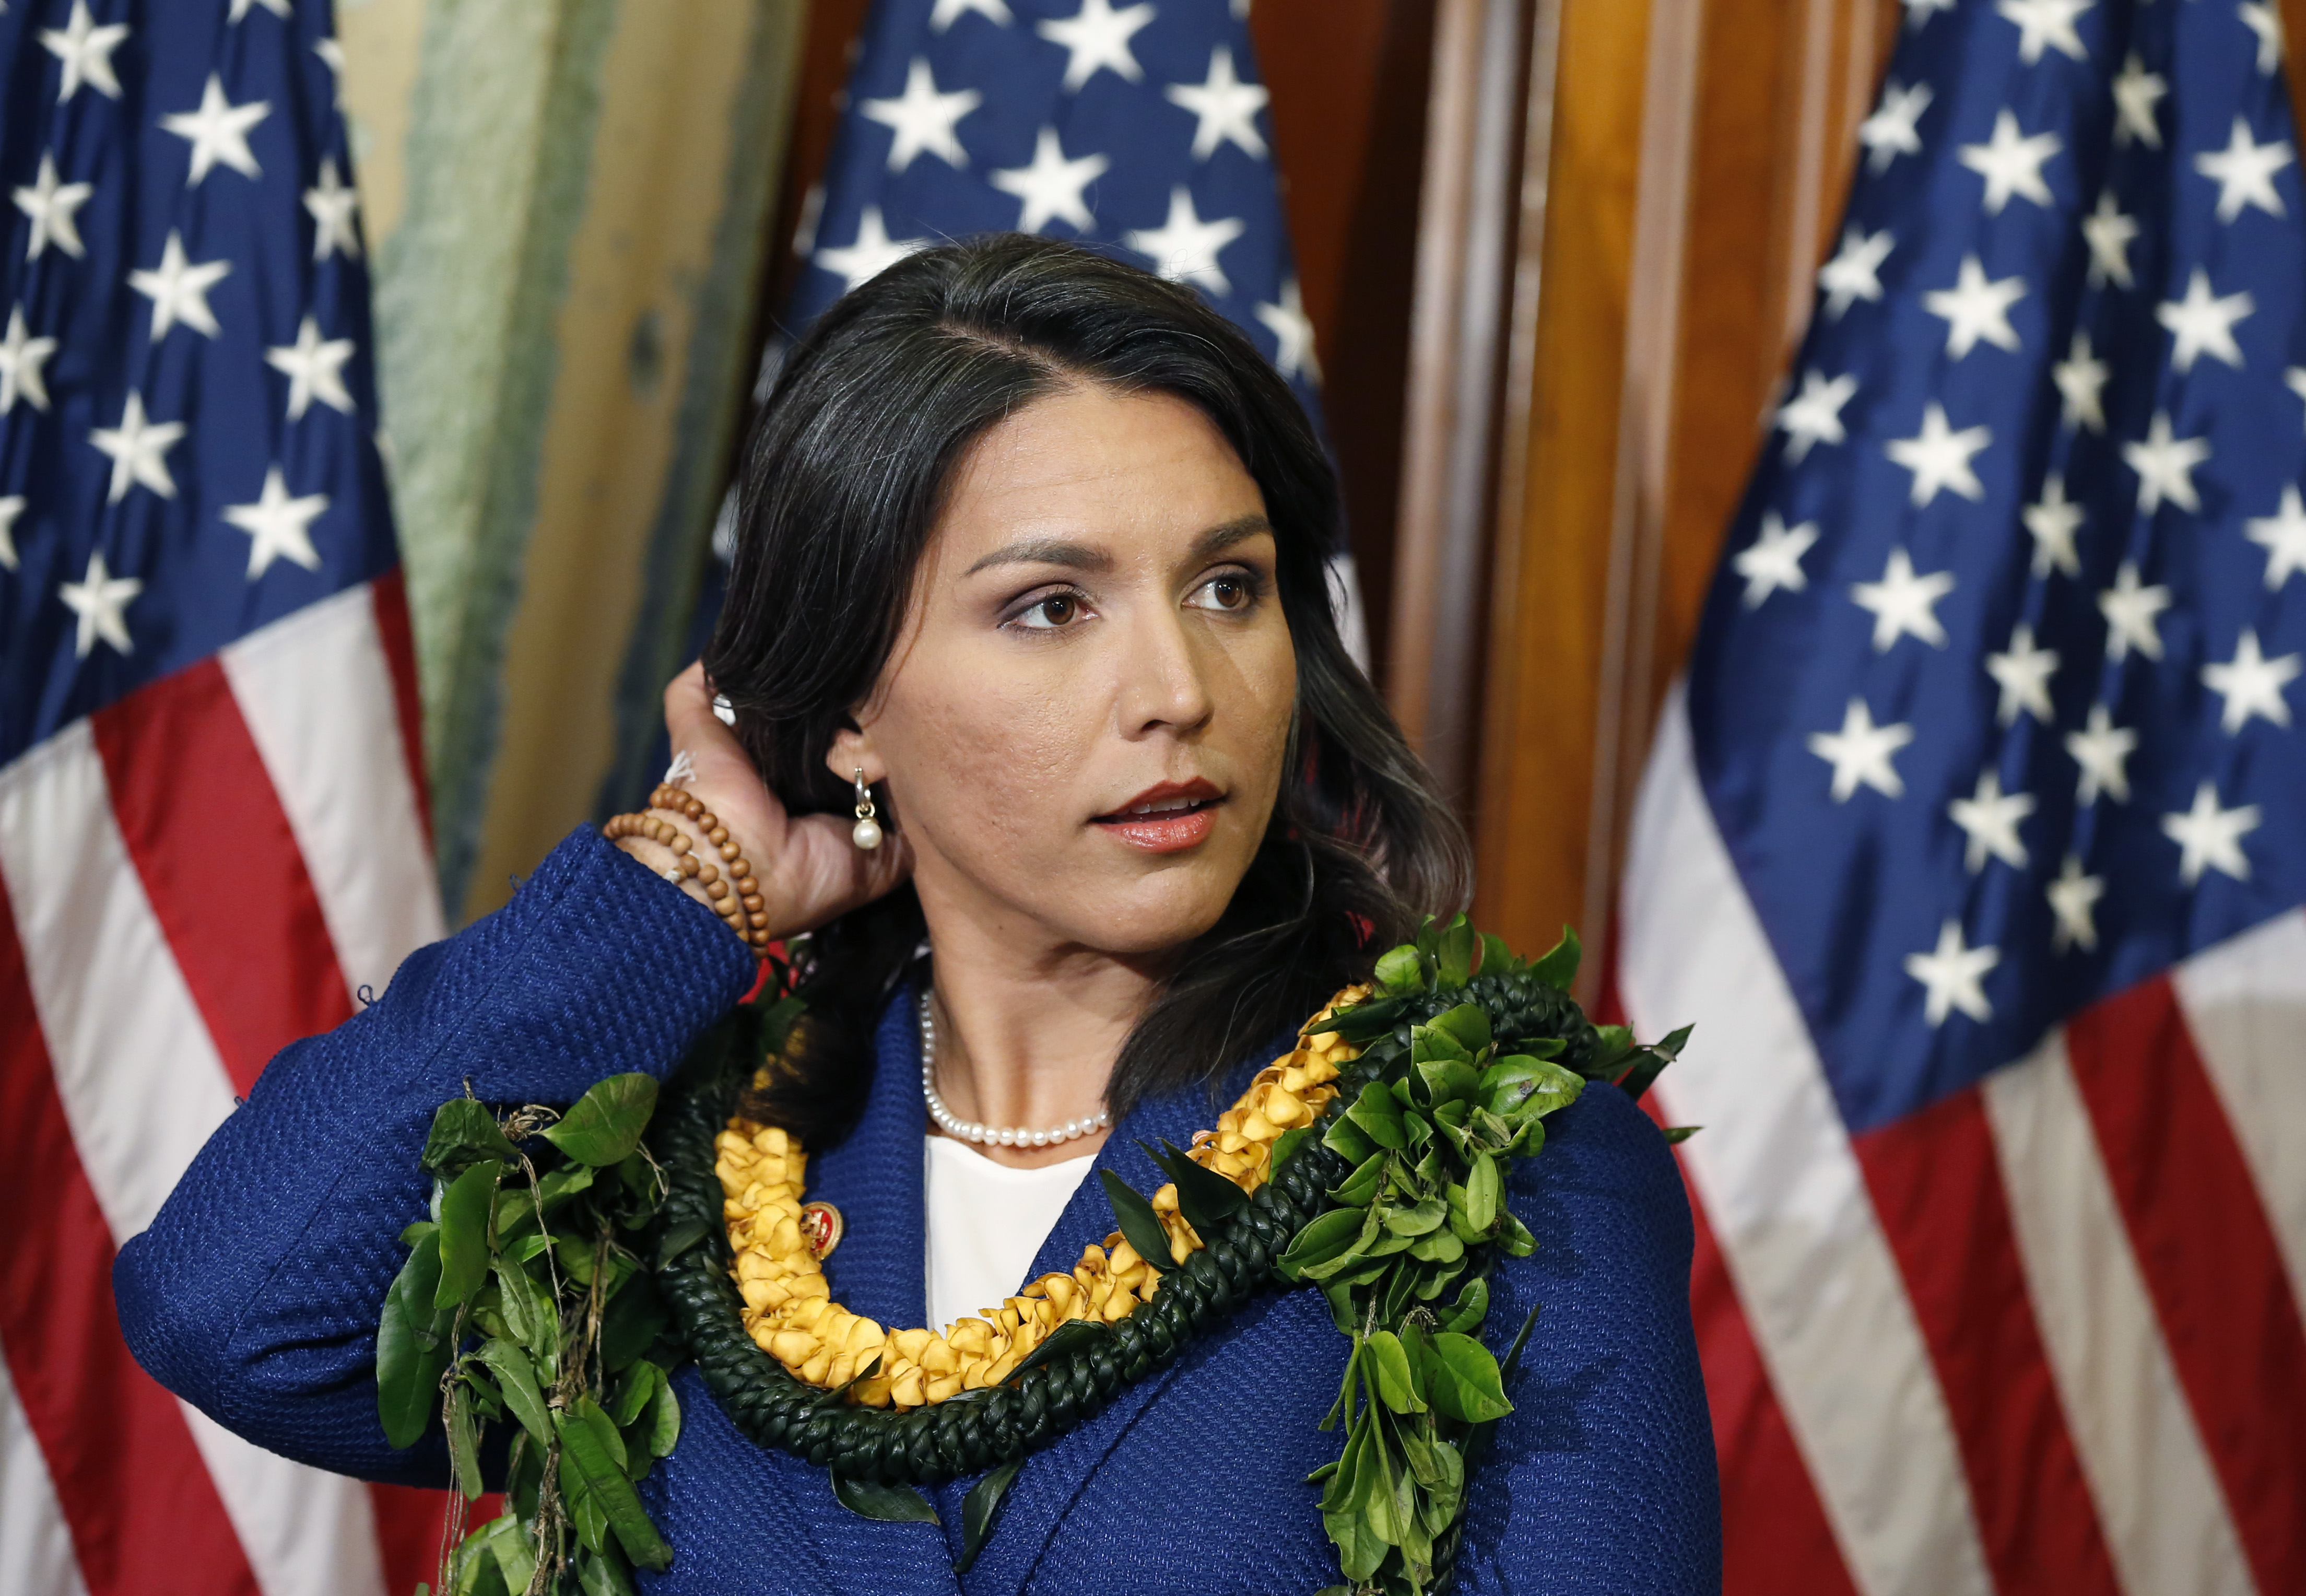 Is Tulsi Gabbard getting the Ron Paul treatment from the DNC?